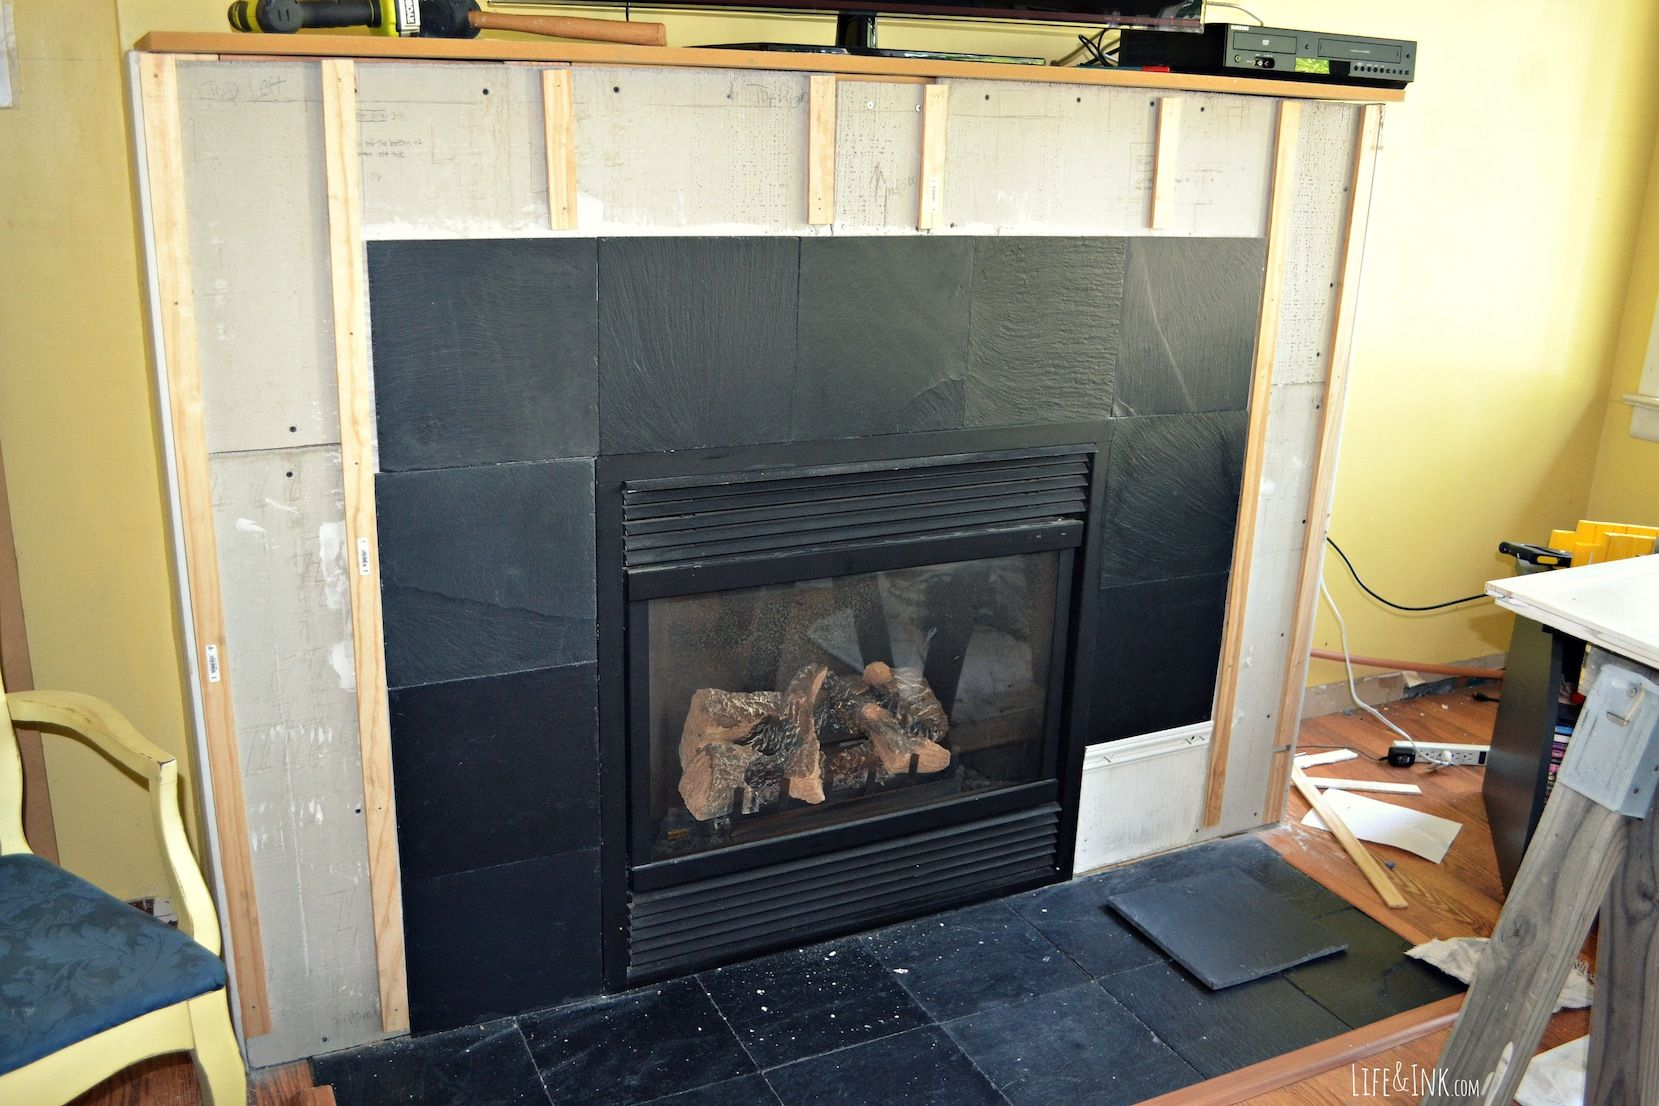 Gusseisen Ofen Streichen How To Tile A Fireplace Surround For The Home Fireplace Tile